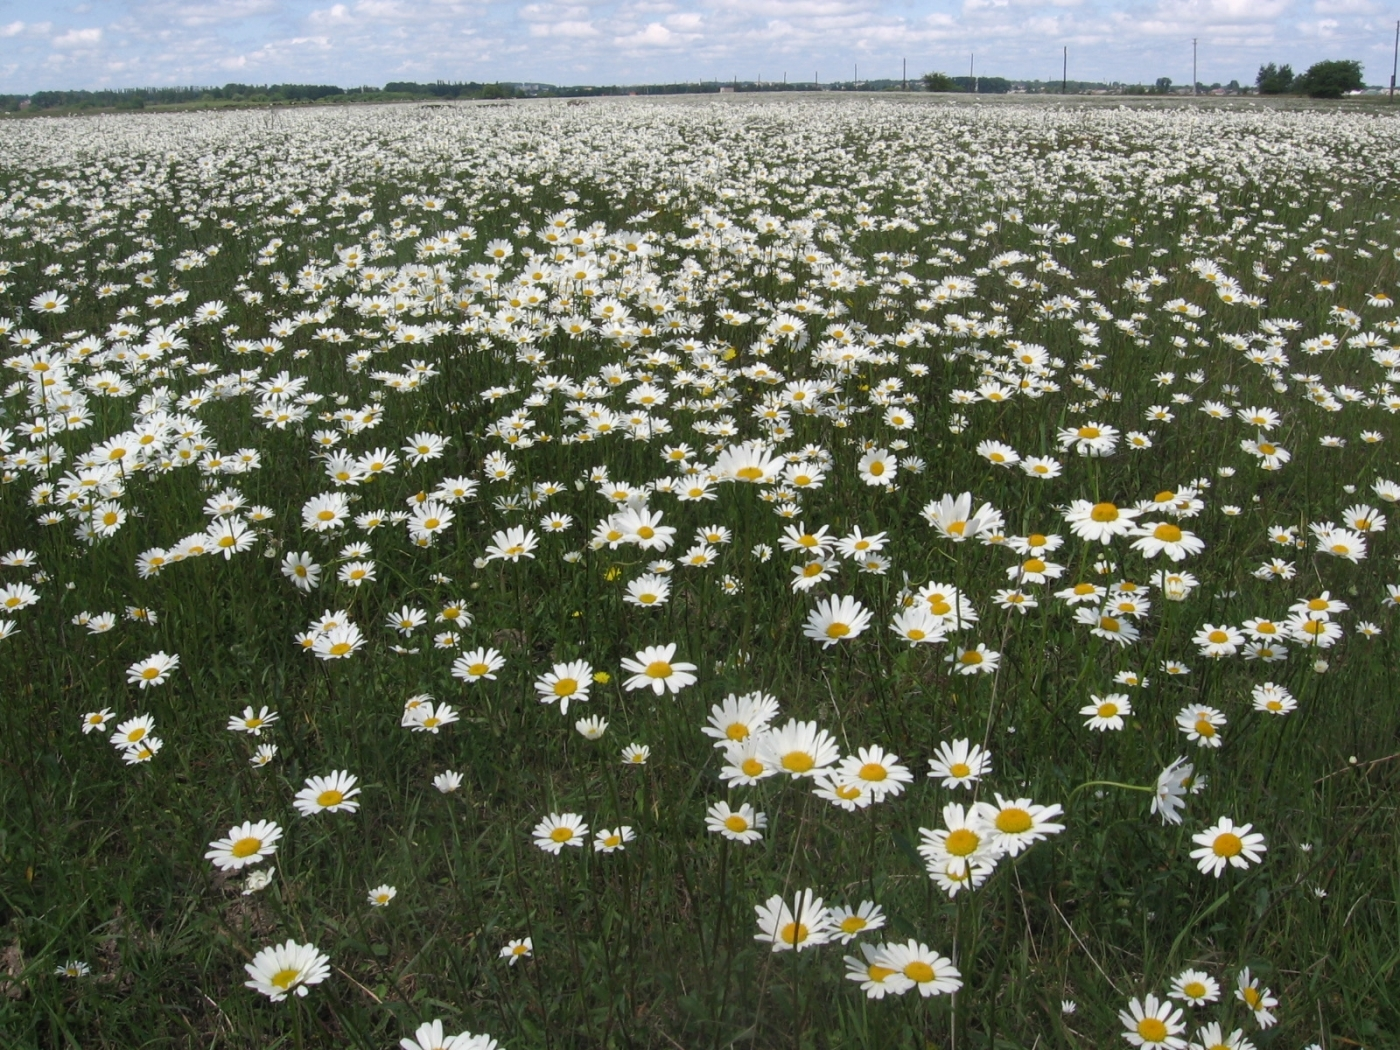 43203 download wallpaper Landscape, Flowers, Camomile screensavers and pictures for free